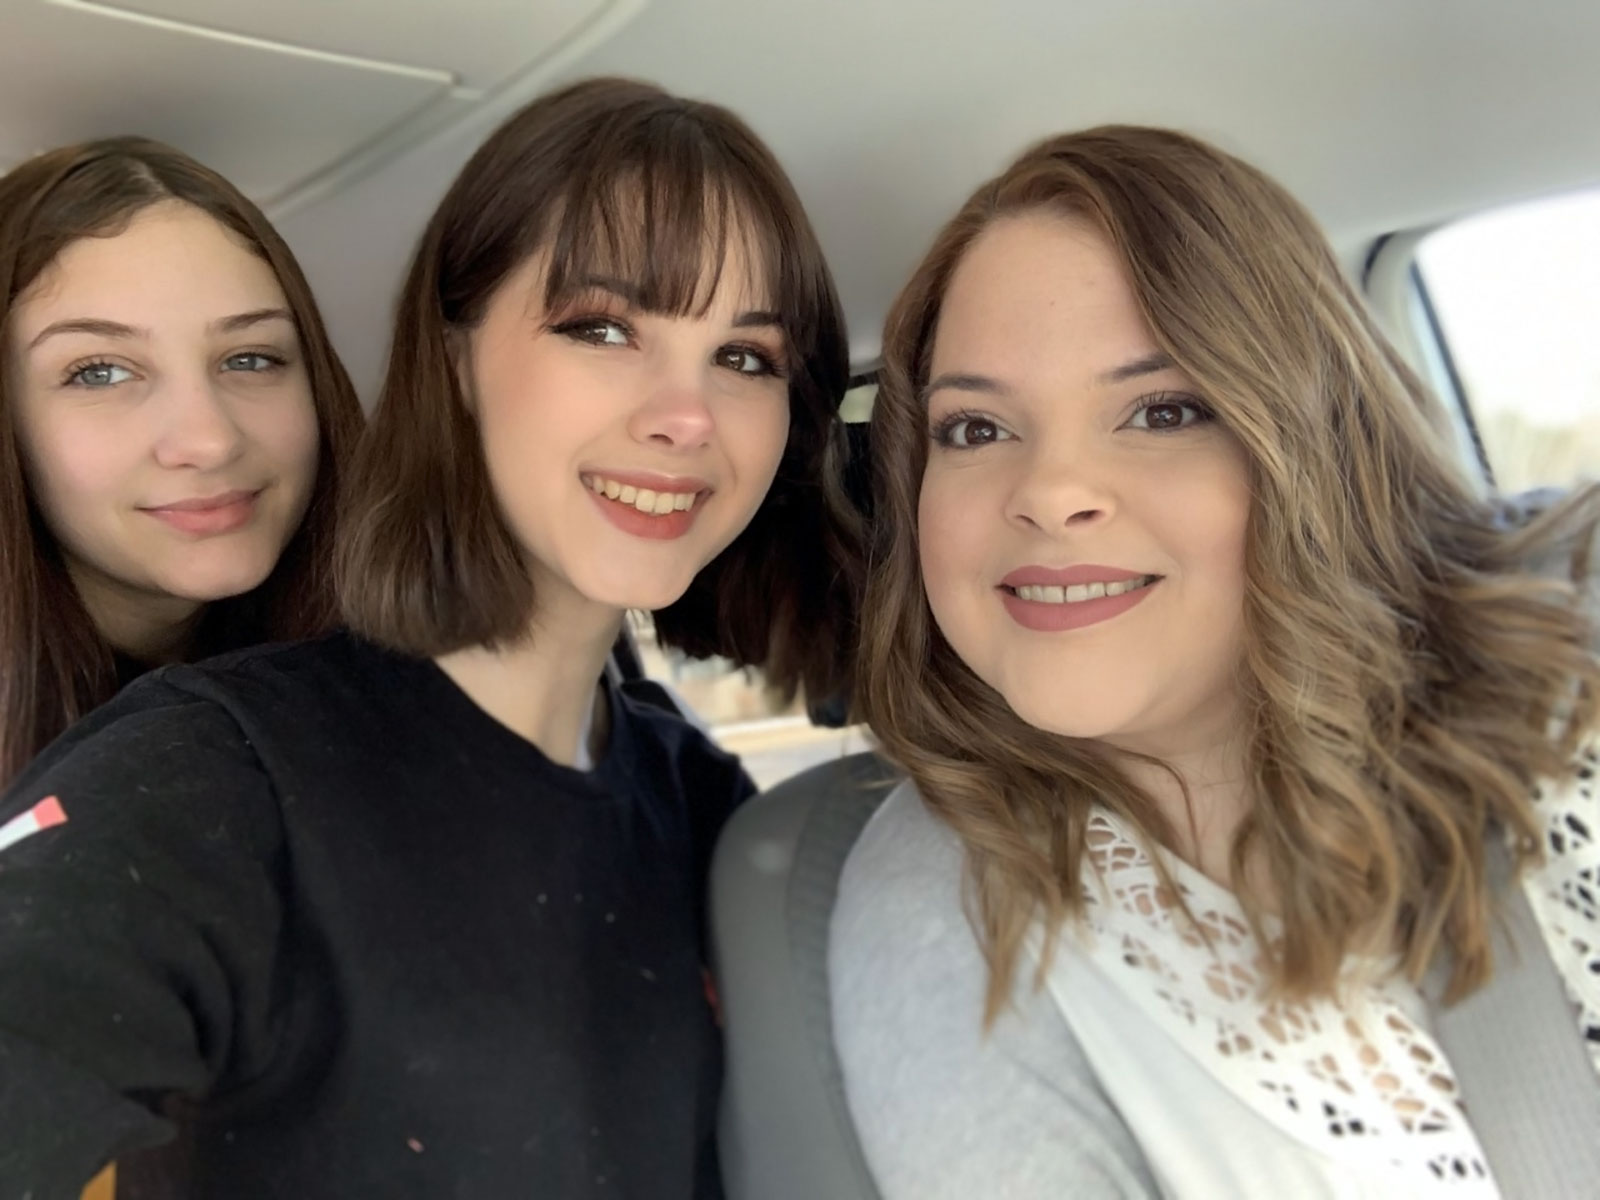 Bianca(center) with her mother, Kim(right) and sister, Olivia